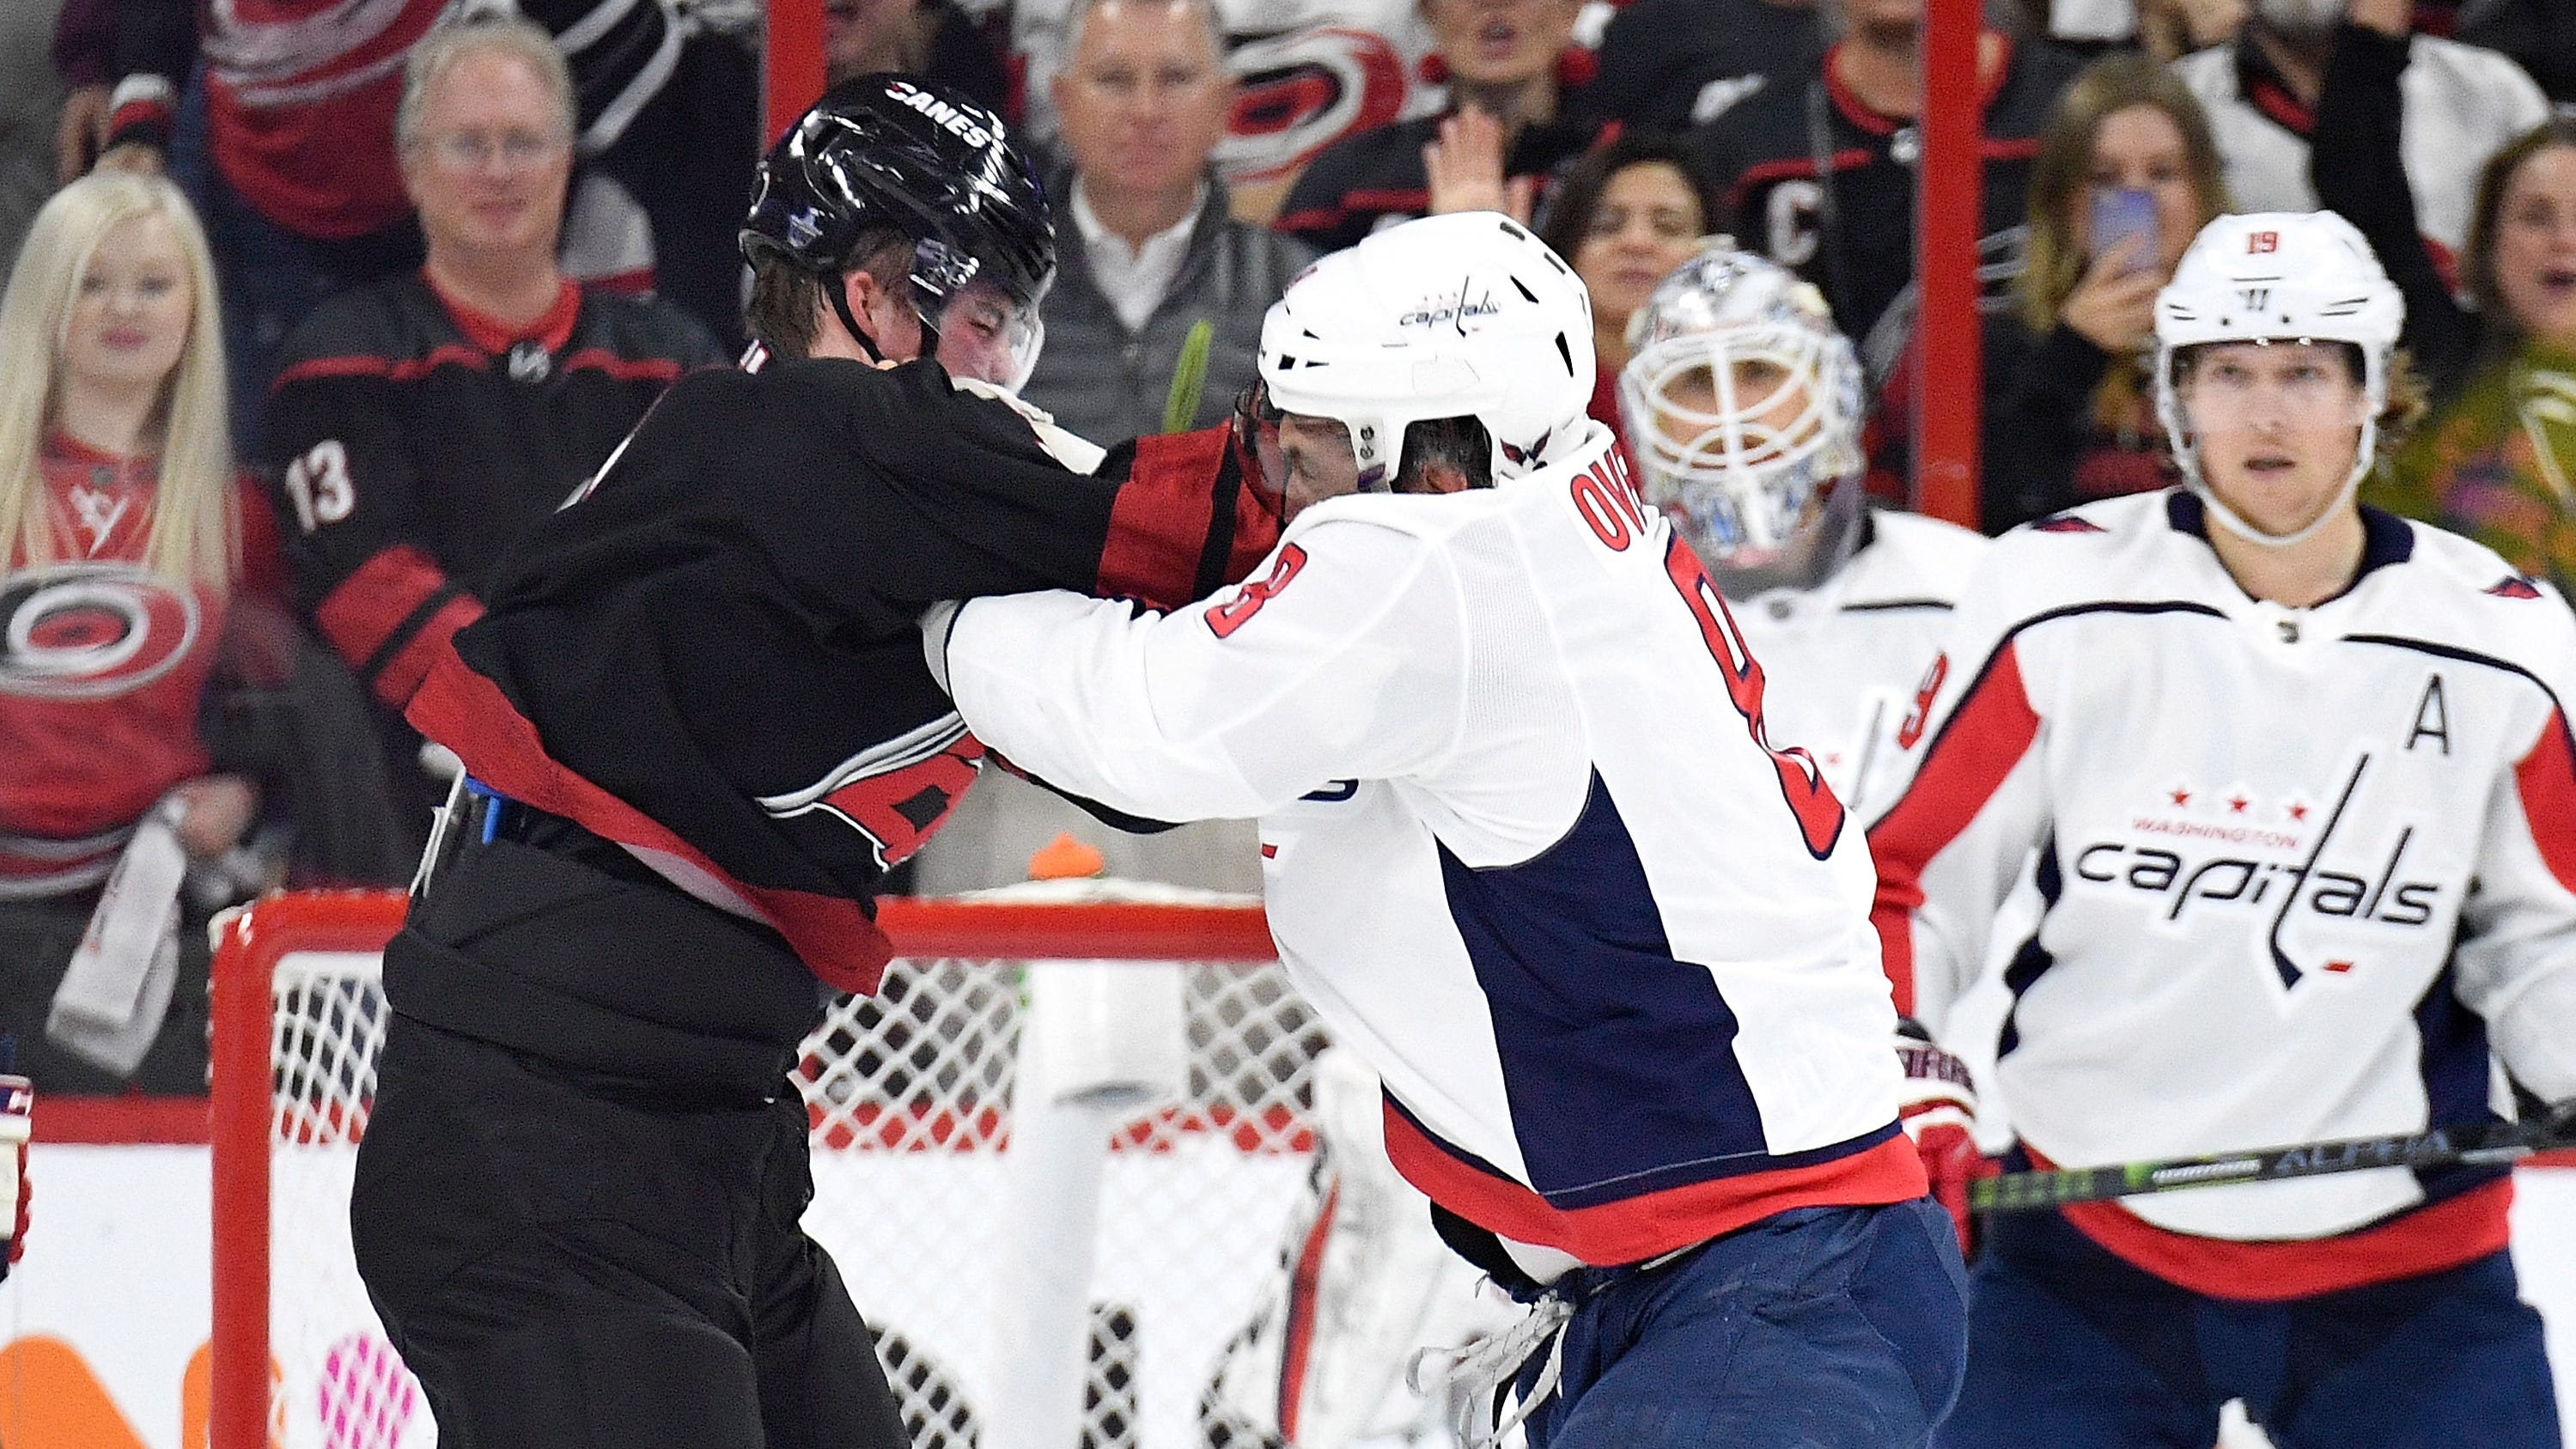 Alex Ovechkin Knocks Out Andrei Svechnikov In Fight During Capitals Hurricanes Game 3